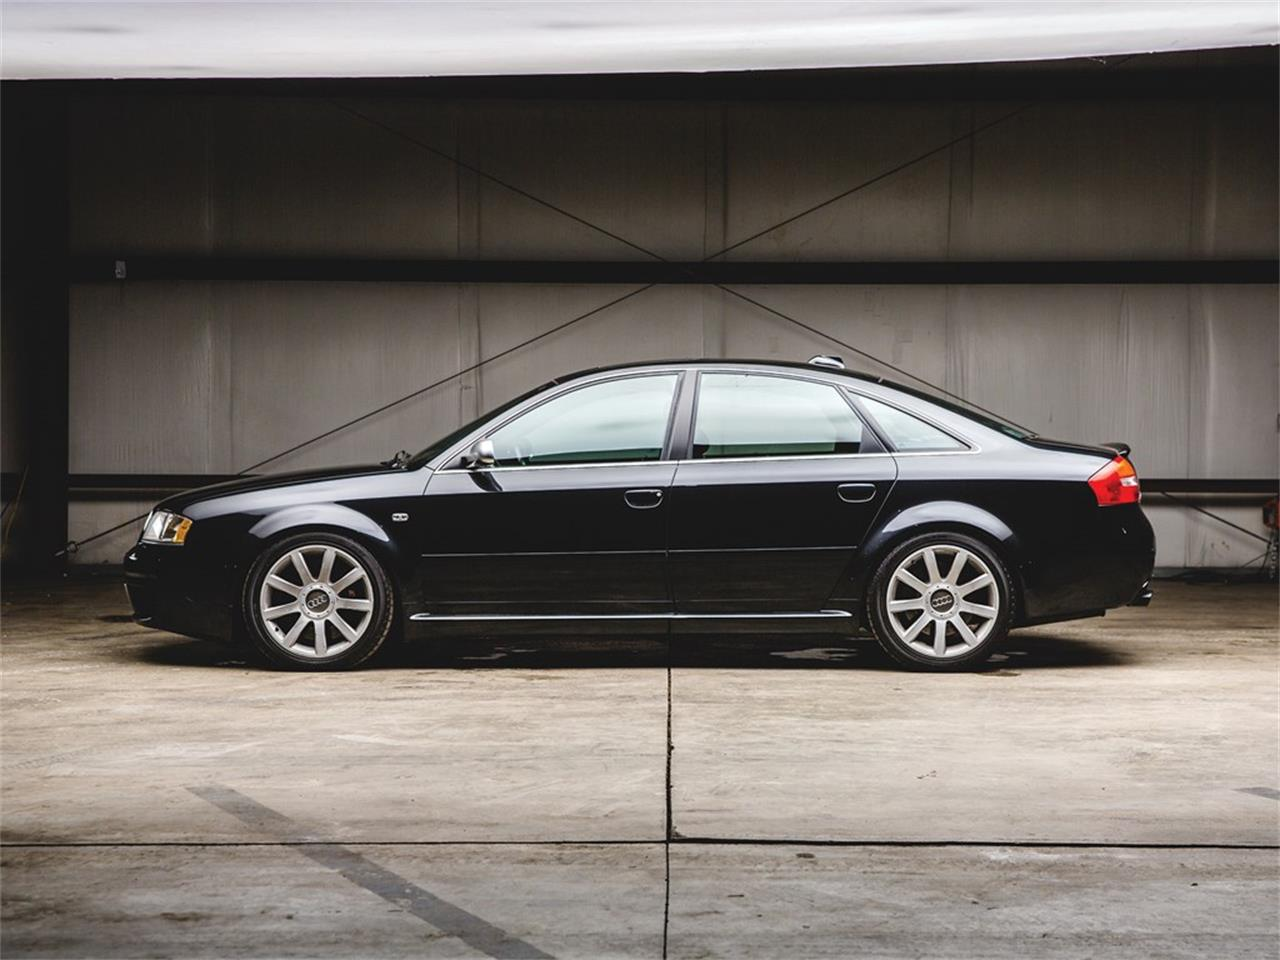 2003 Audi S6 (CC-1245499) for sale in Auburn, Indiana